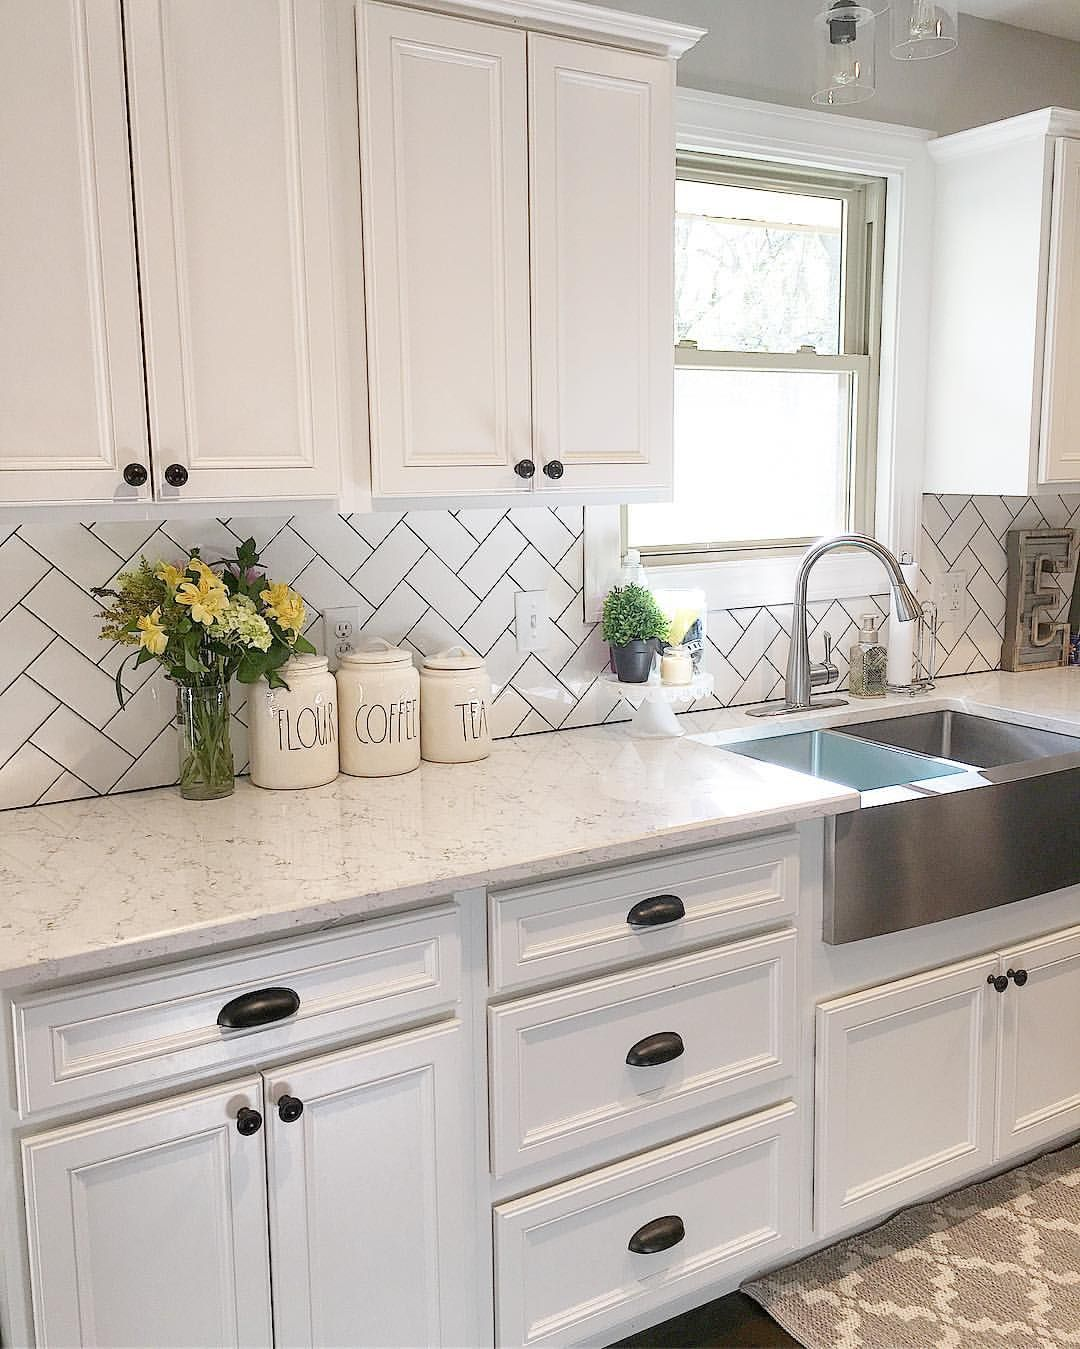 White kitchen, kitchen decor, subway tile, herringbone